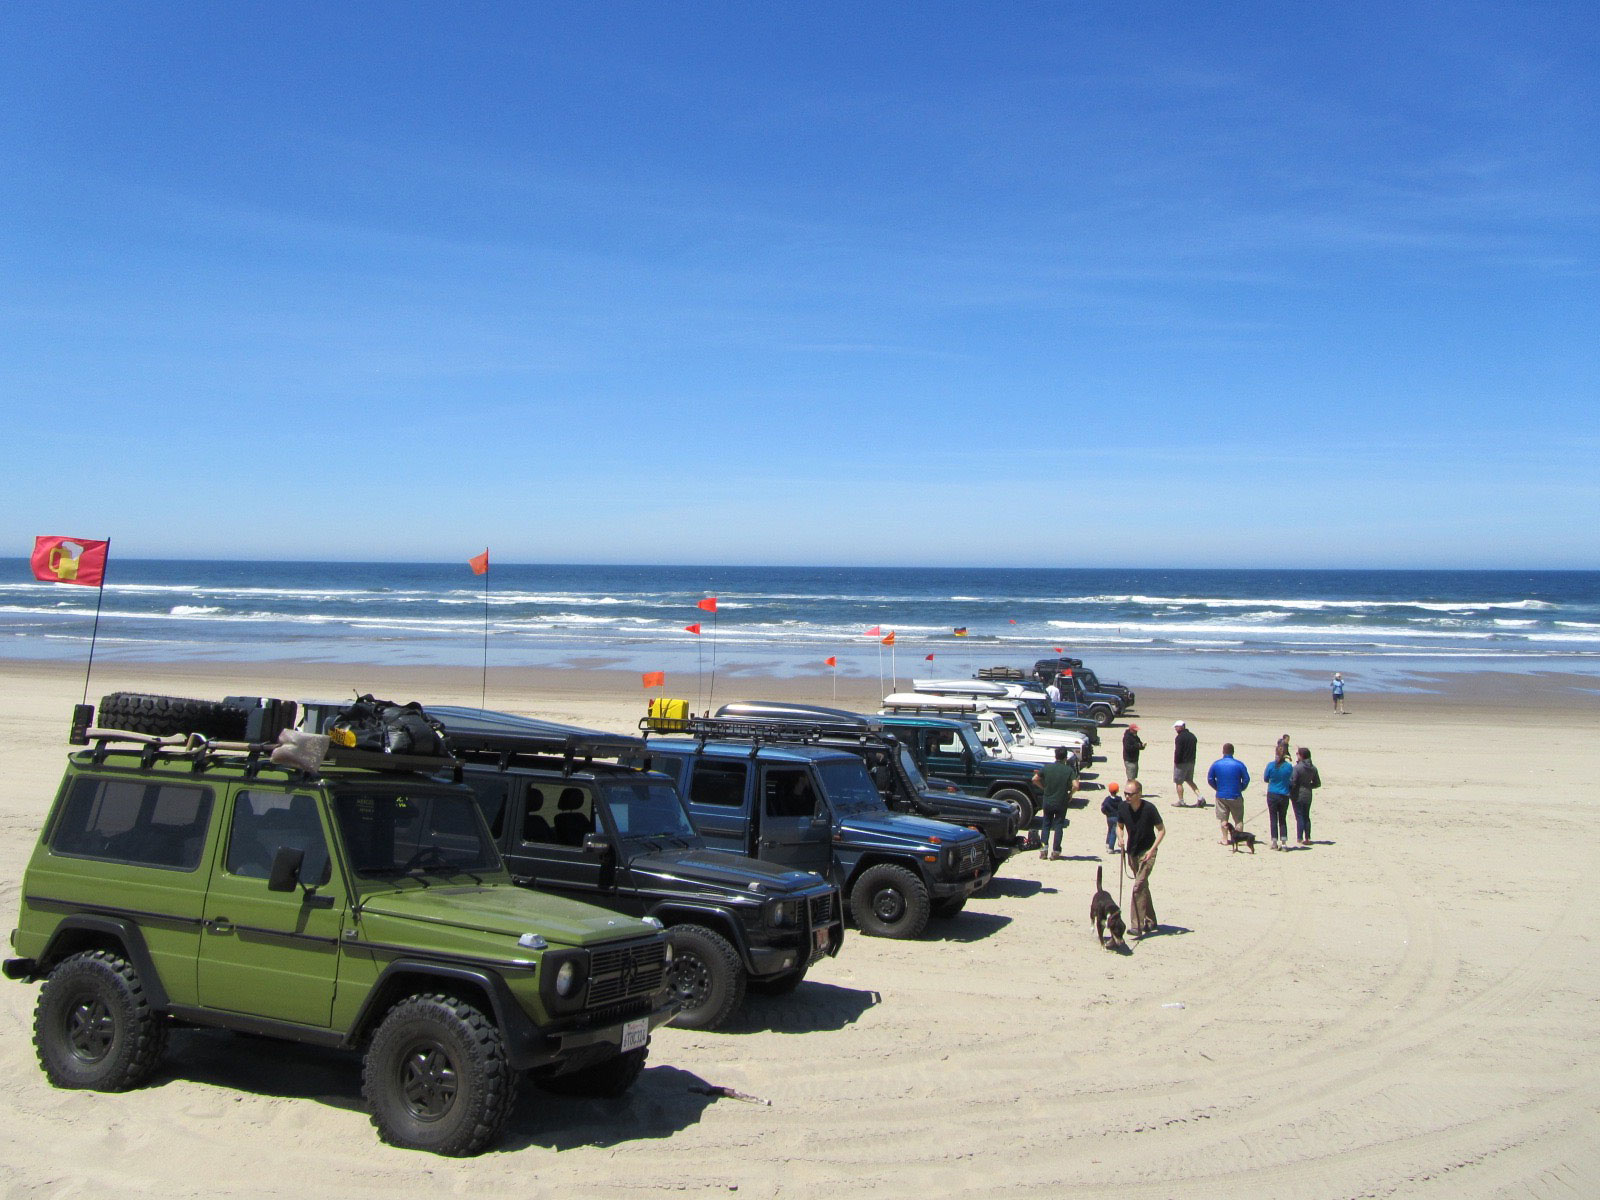 Gs of different vintages line up to take the beach by storm.